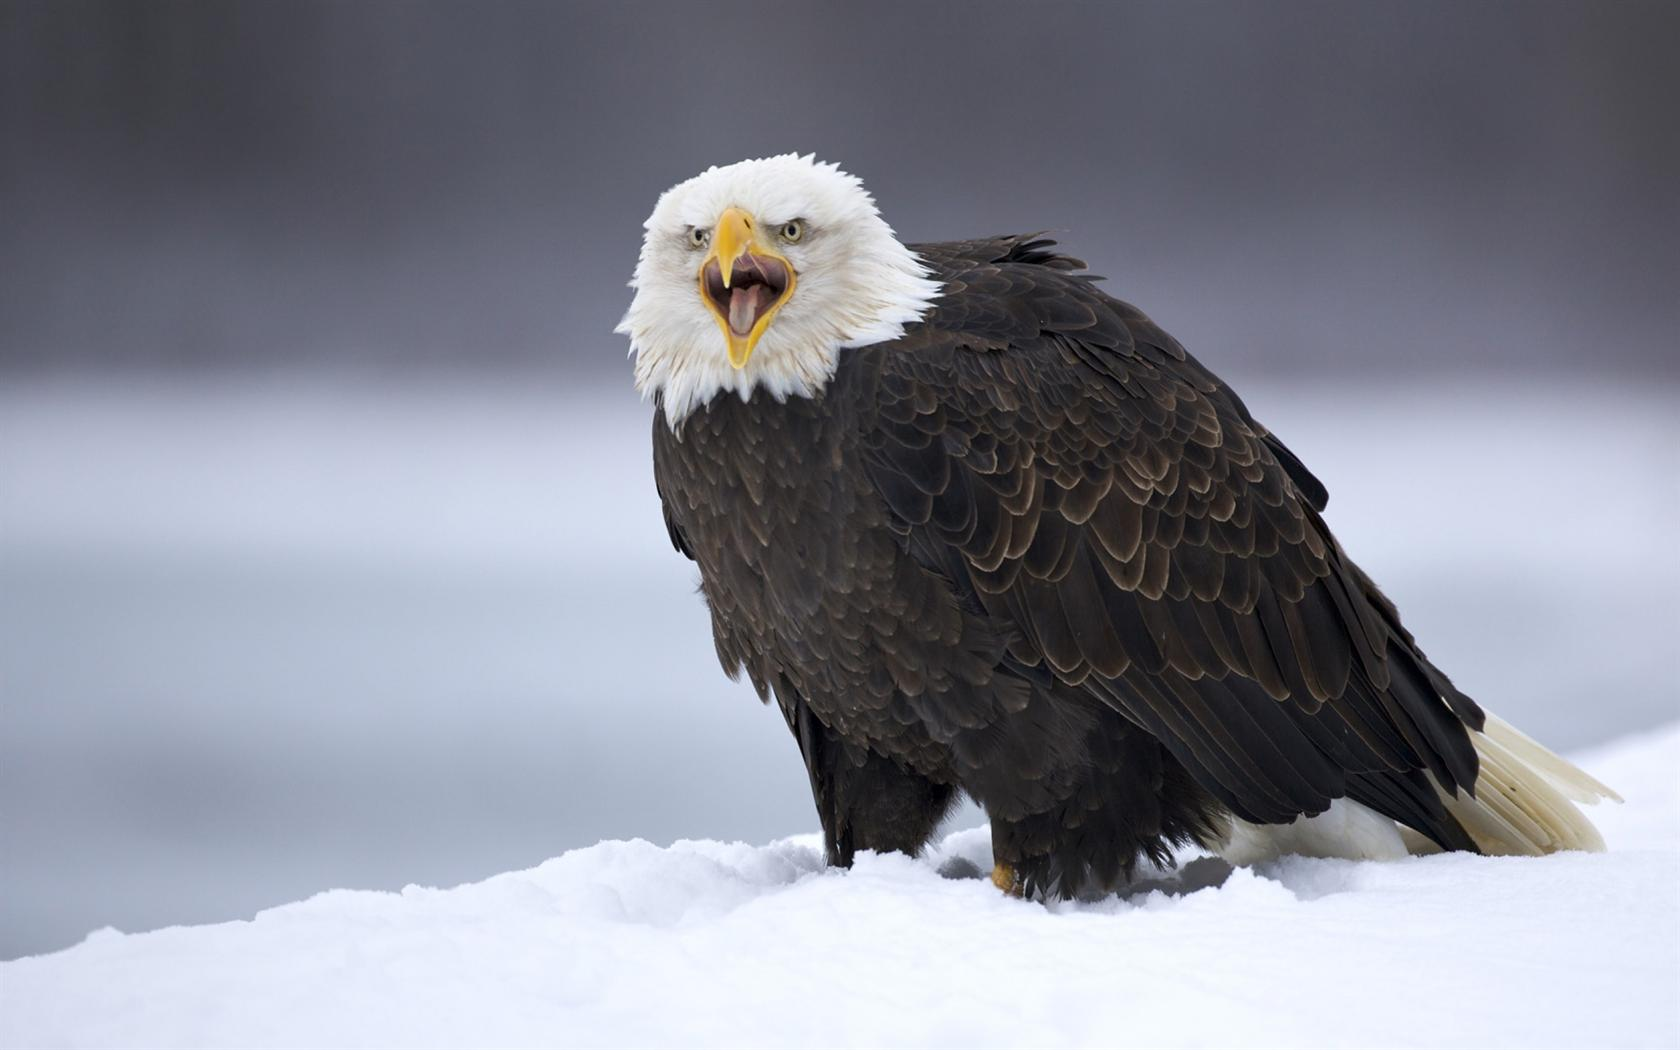 bald eagle wallpapers - sf wallpaper